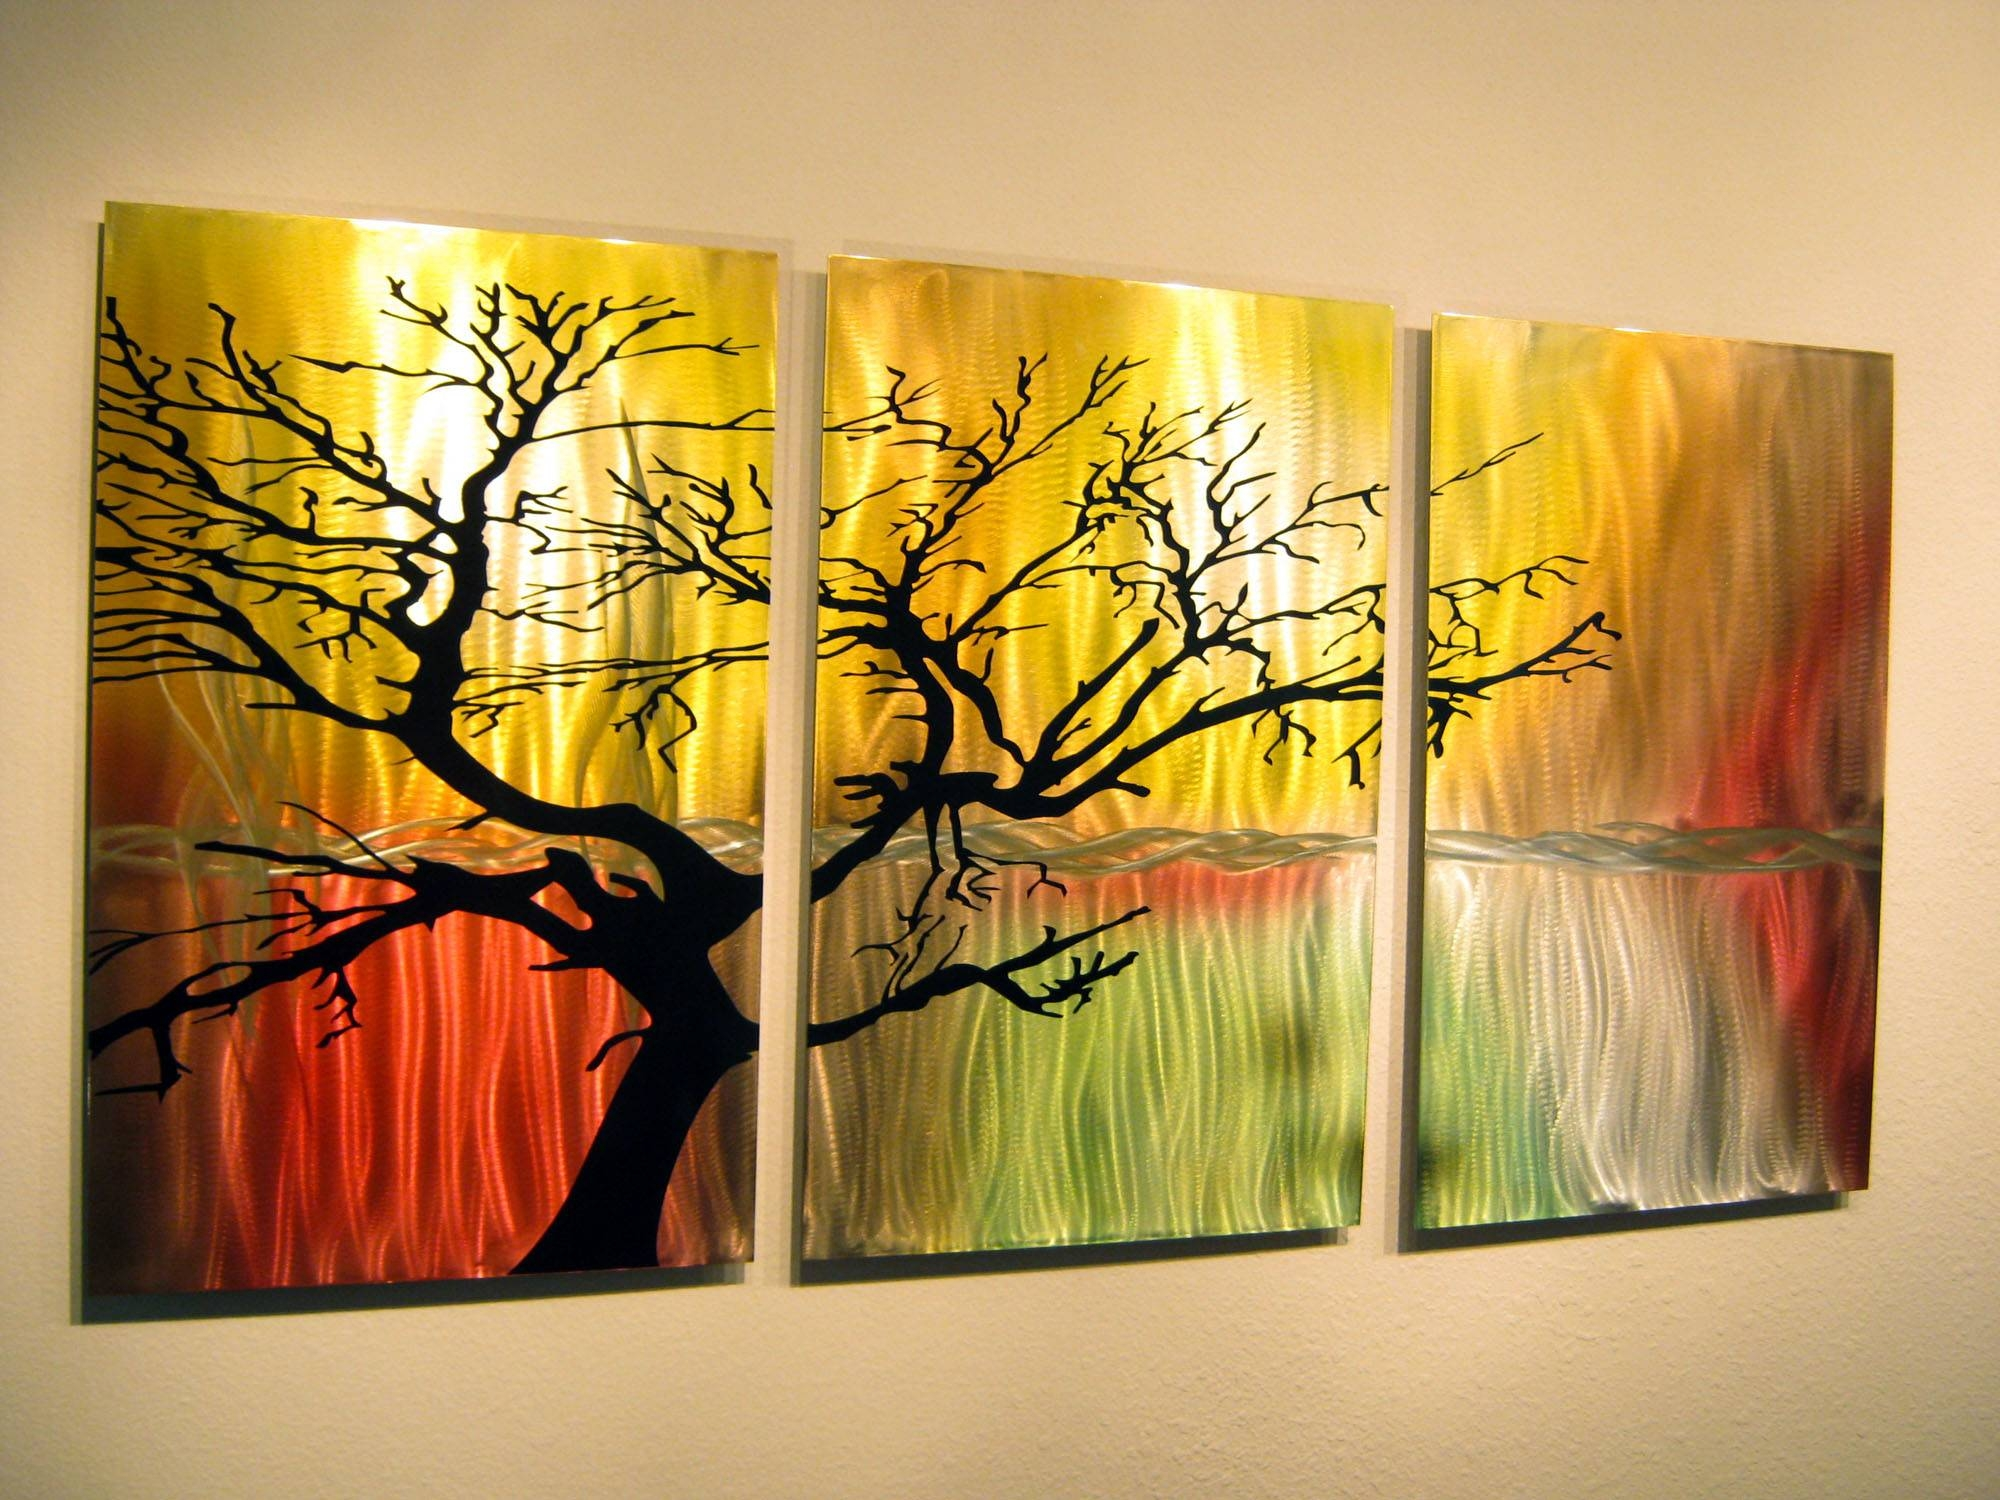 Tree In Silhouette Metal Wall Art Contemporary Modern Decor 3 Intended For Latest Metal Wall Art Panels (View 3 of 20)